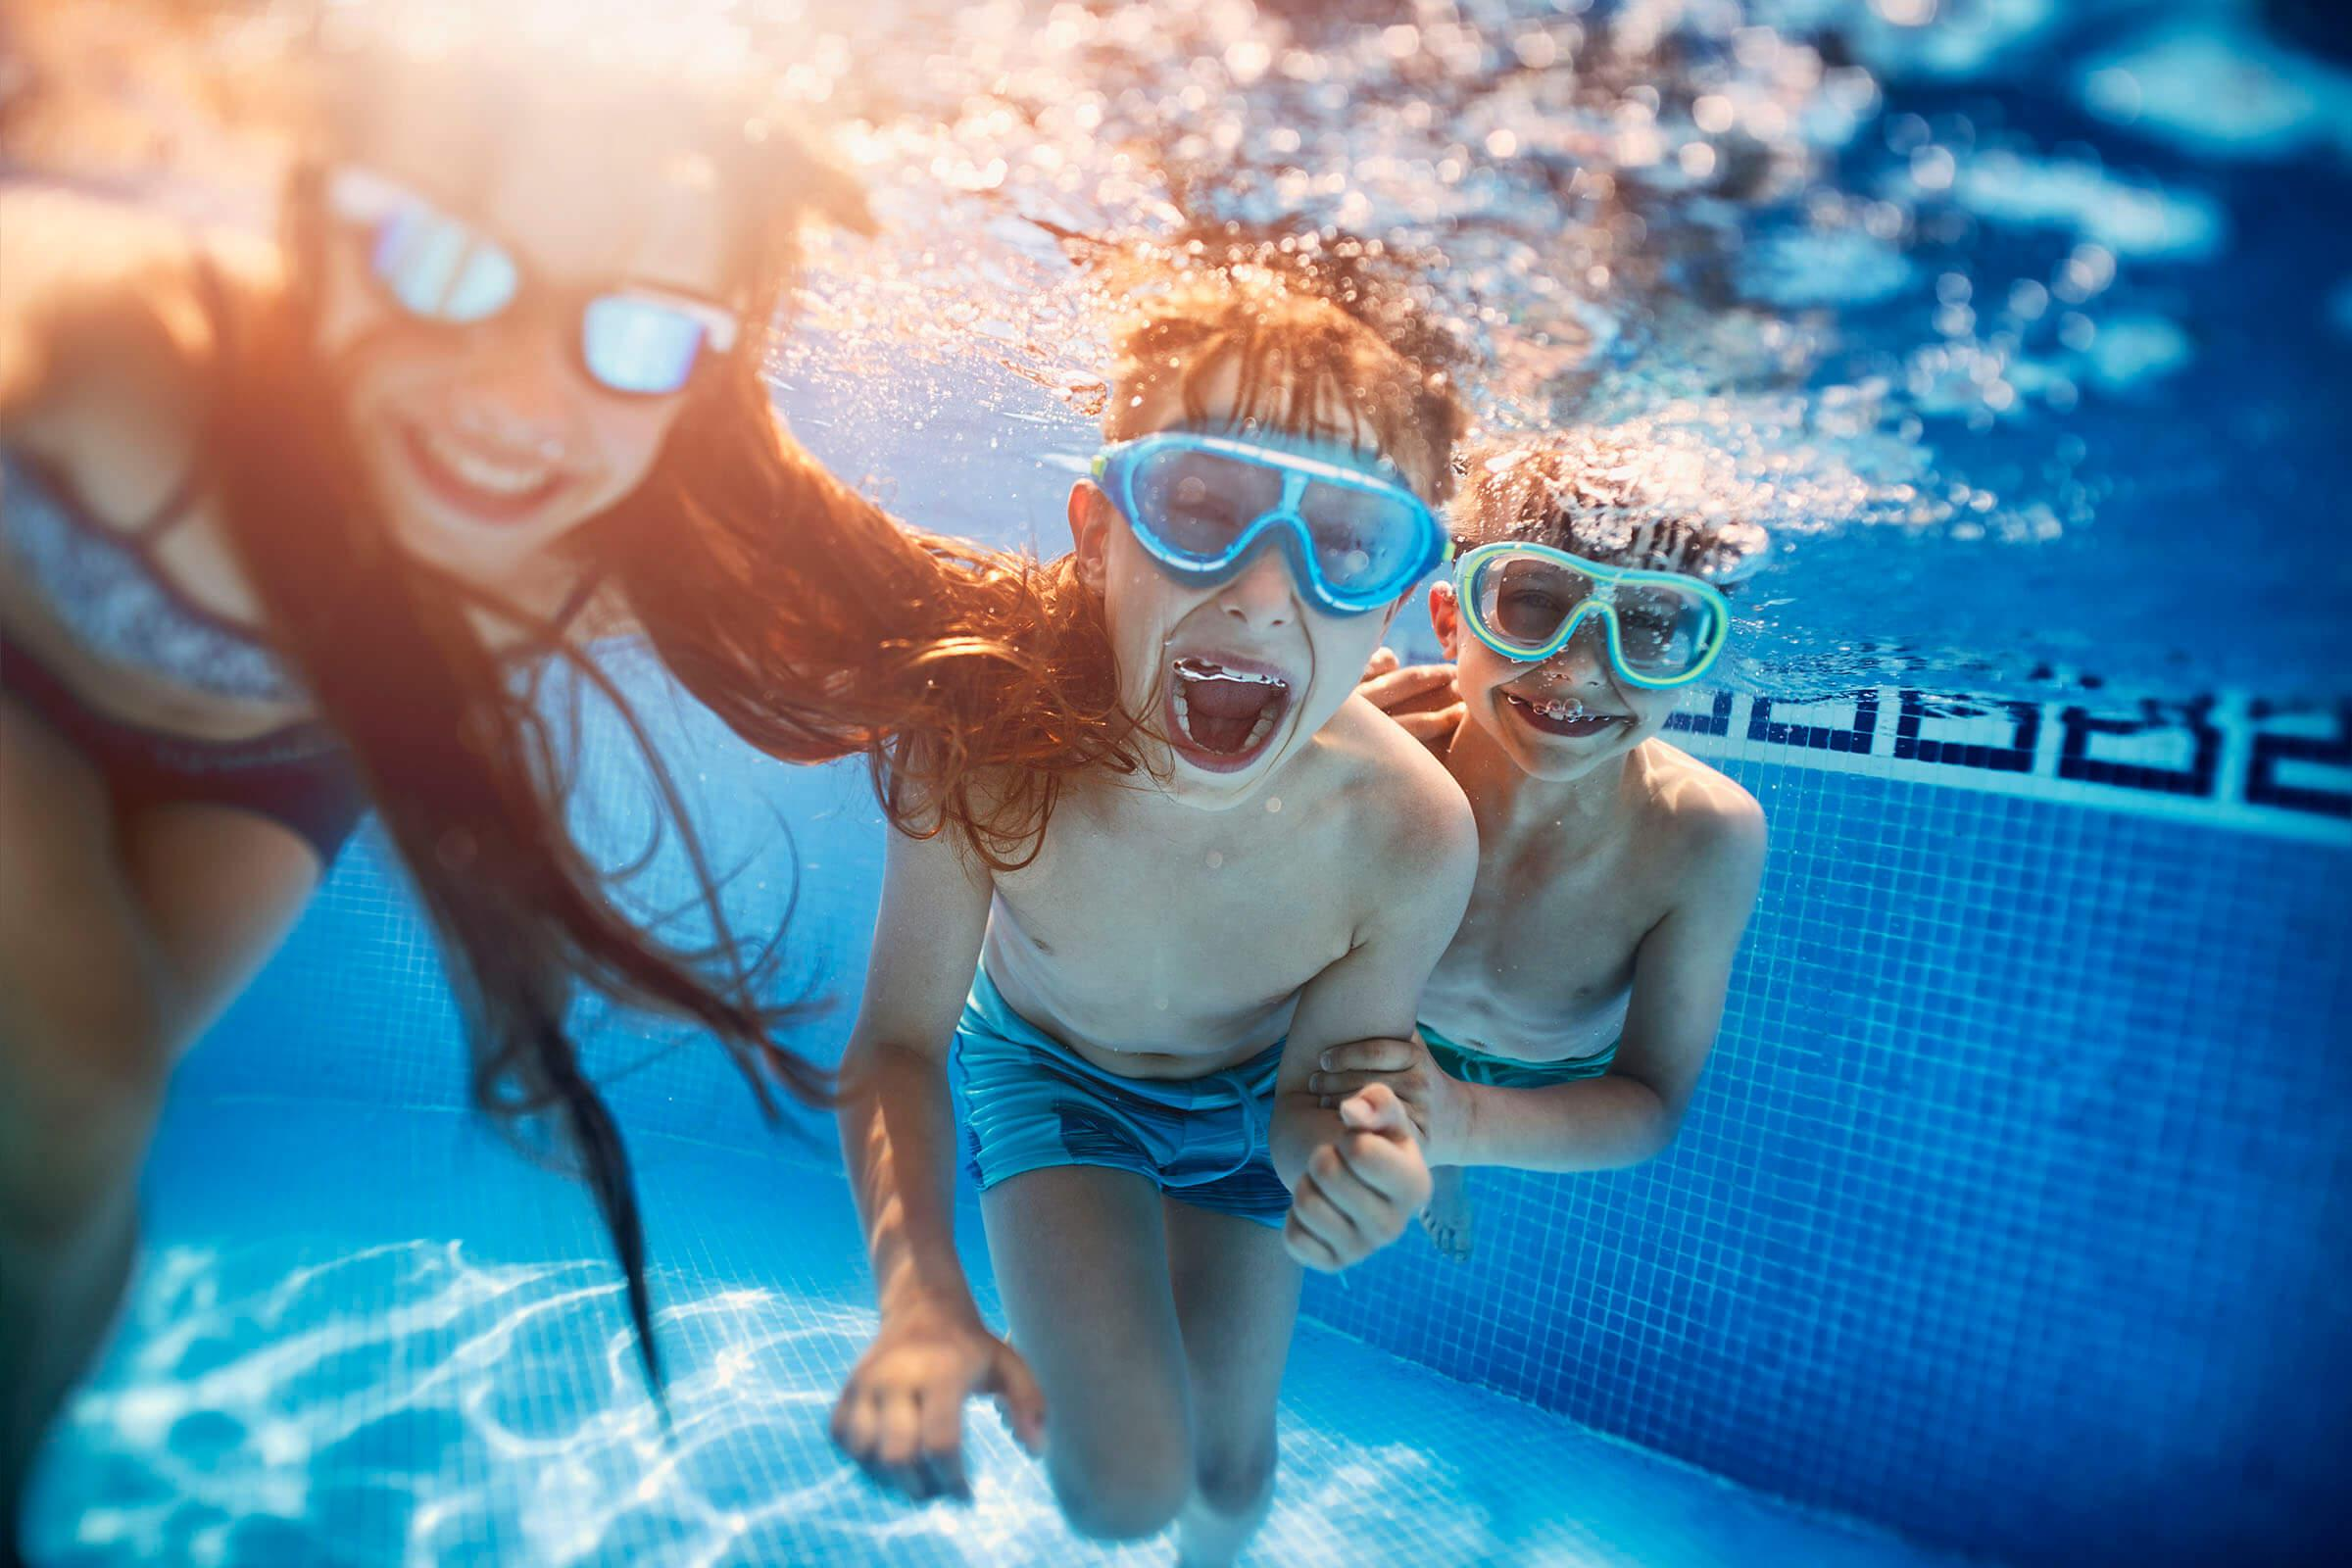 Kids-Underwater-Pool-875007808.jpg